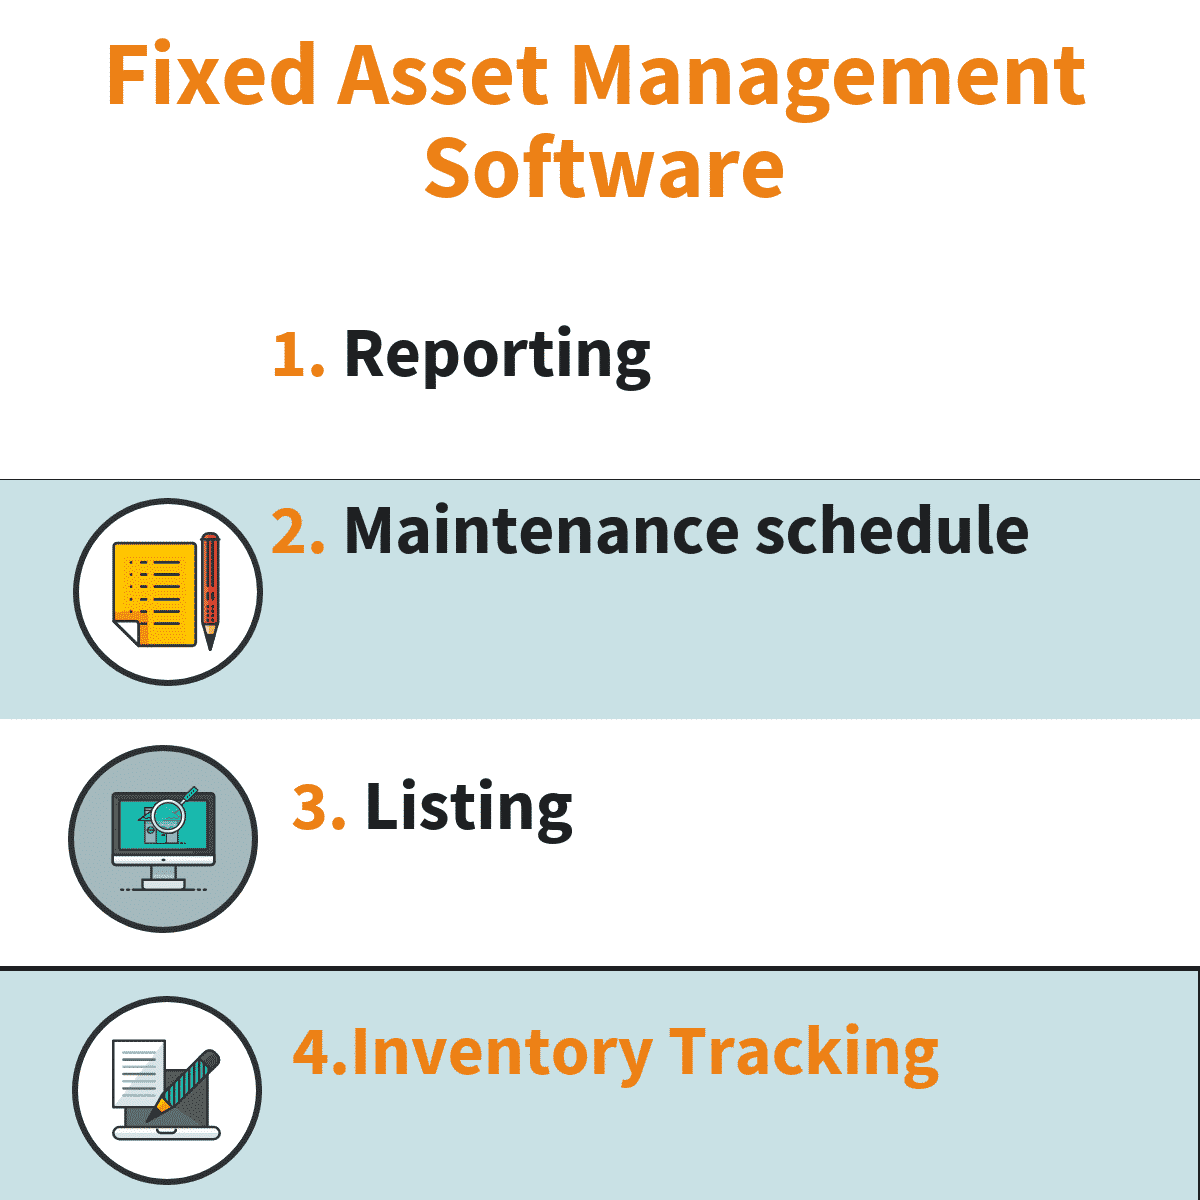 Top 22 Fixed Asset Management Software In 2020 Reviews Features Pricing Comparison Pat Research B2b Reviews Buying Guides Best Practices Fixed Asset Asset Management Digital Asset Management